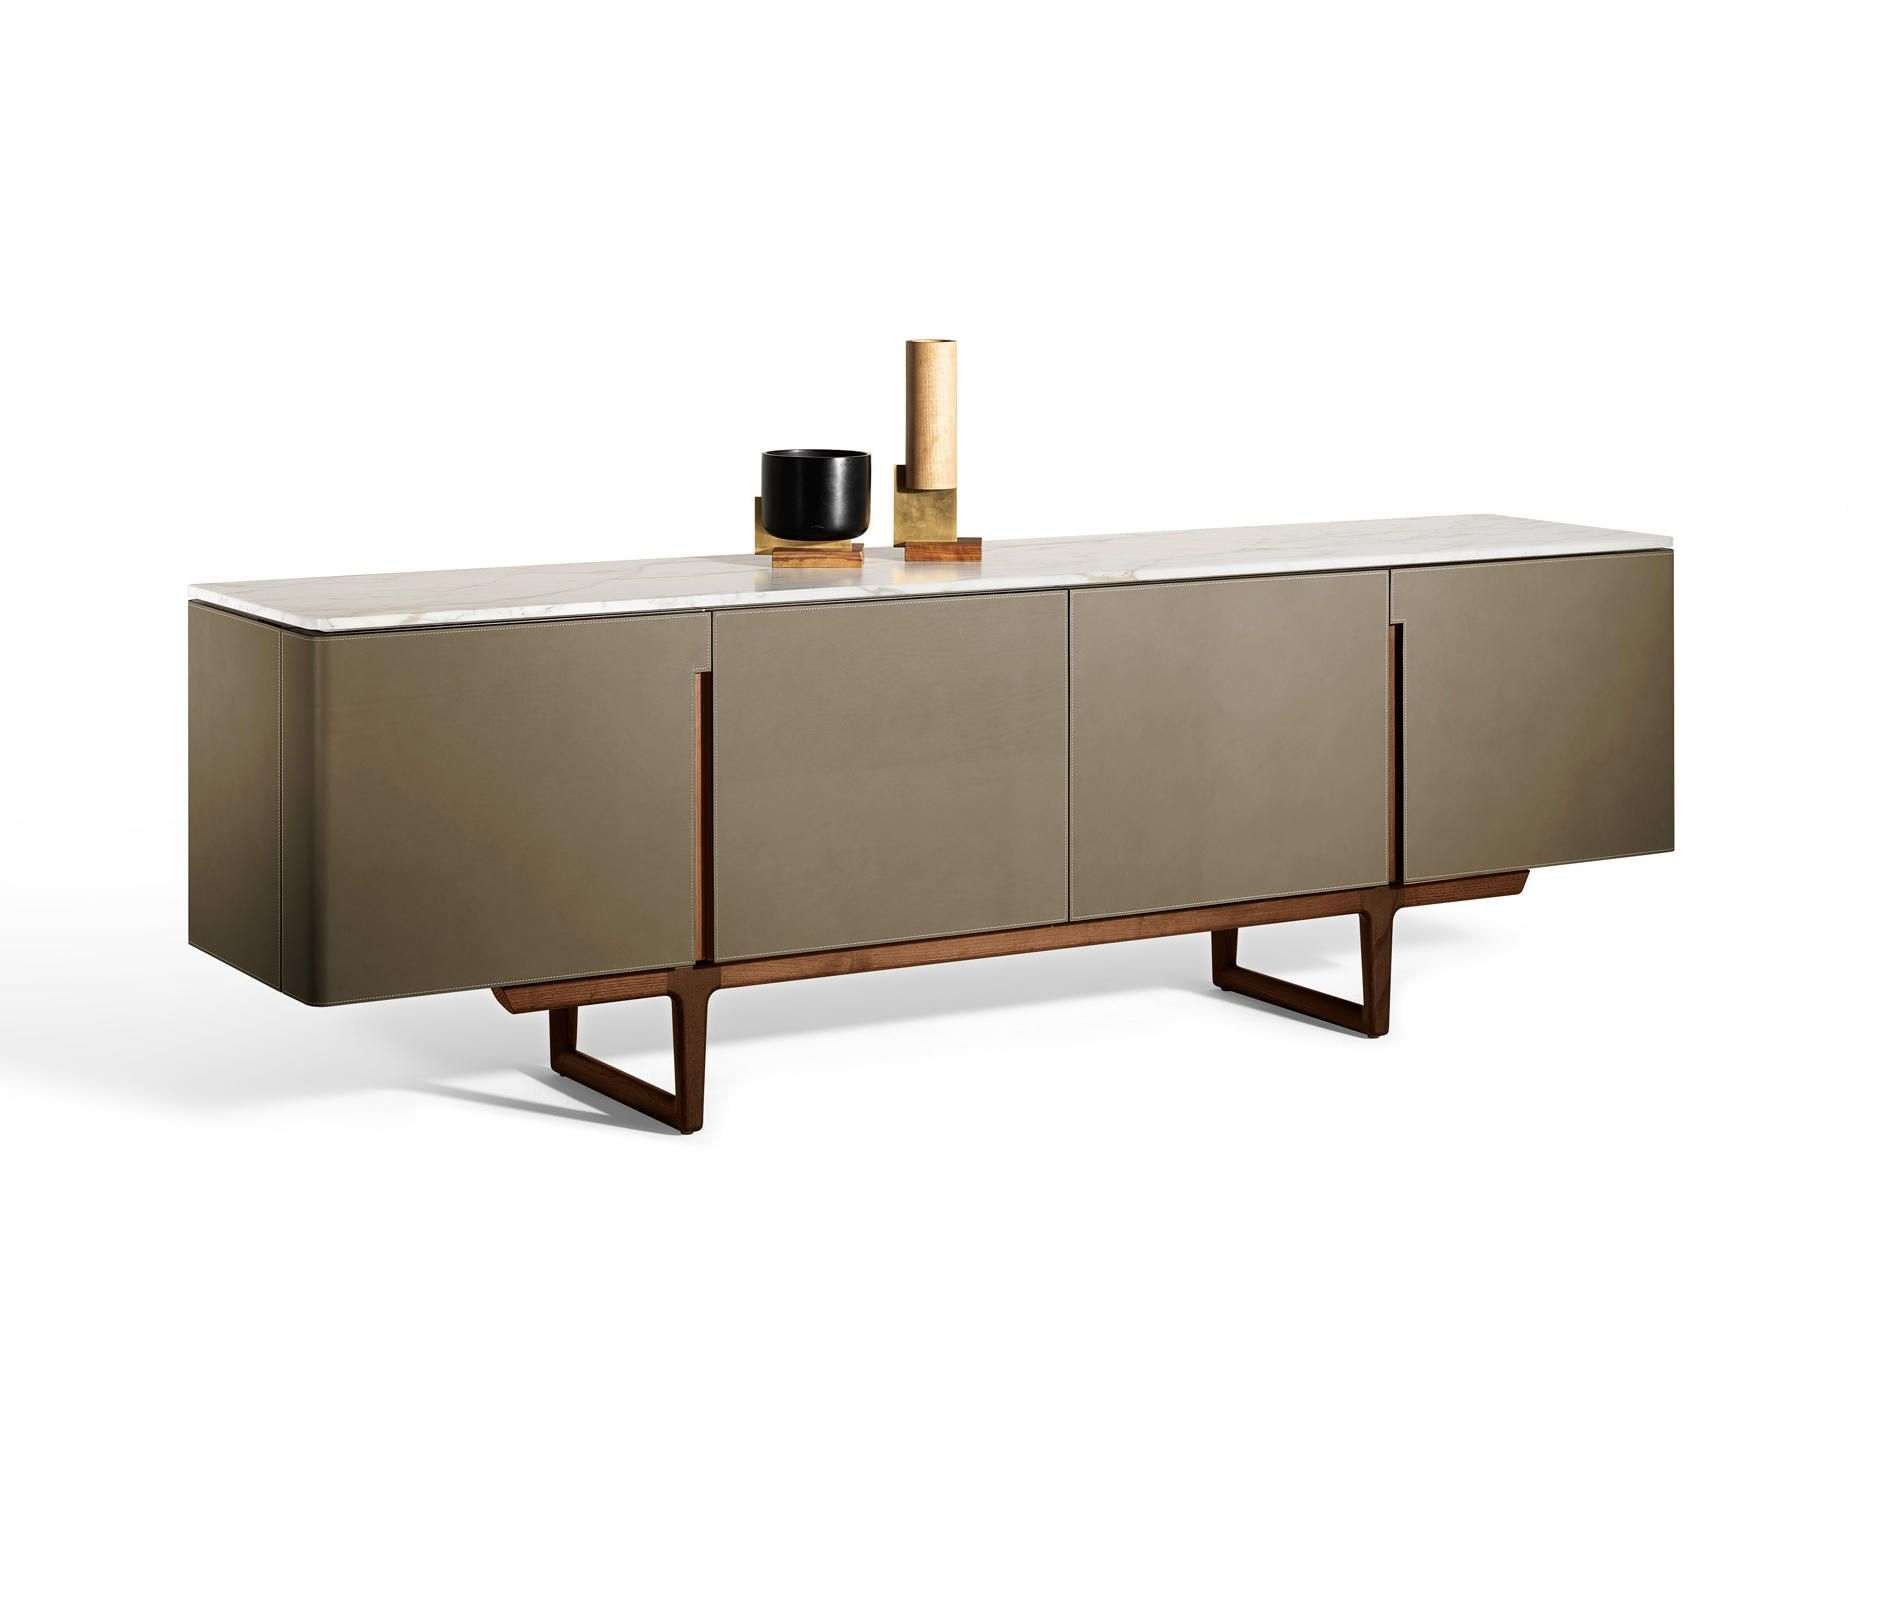 Fidelio – Designer Sideboards From Poltrona Frau ✓ All Information Throughout Latest Diamond Circle Sideboards (#9 of 20)